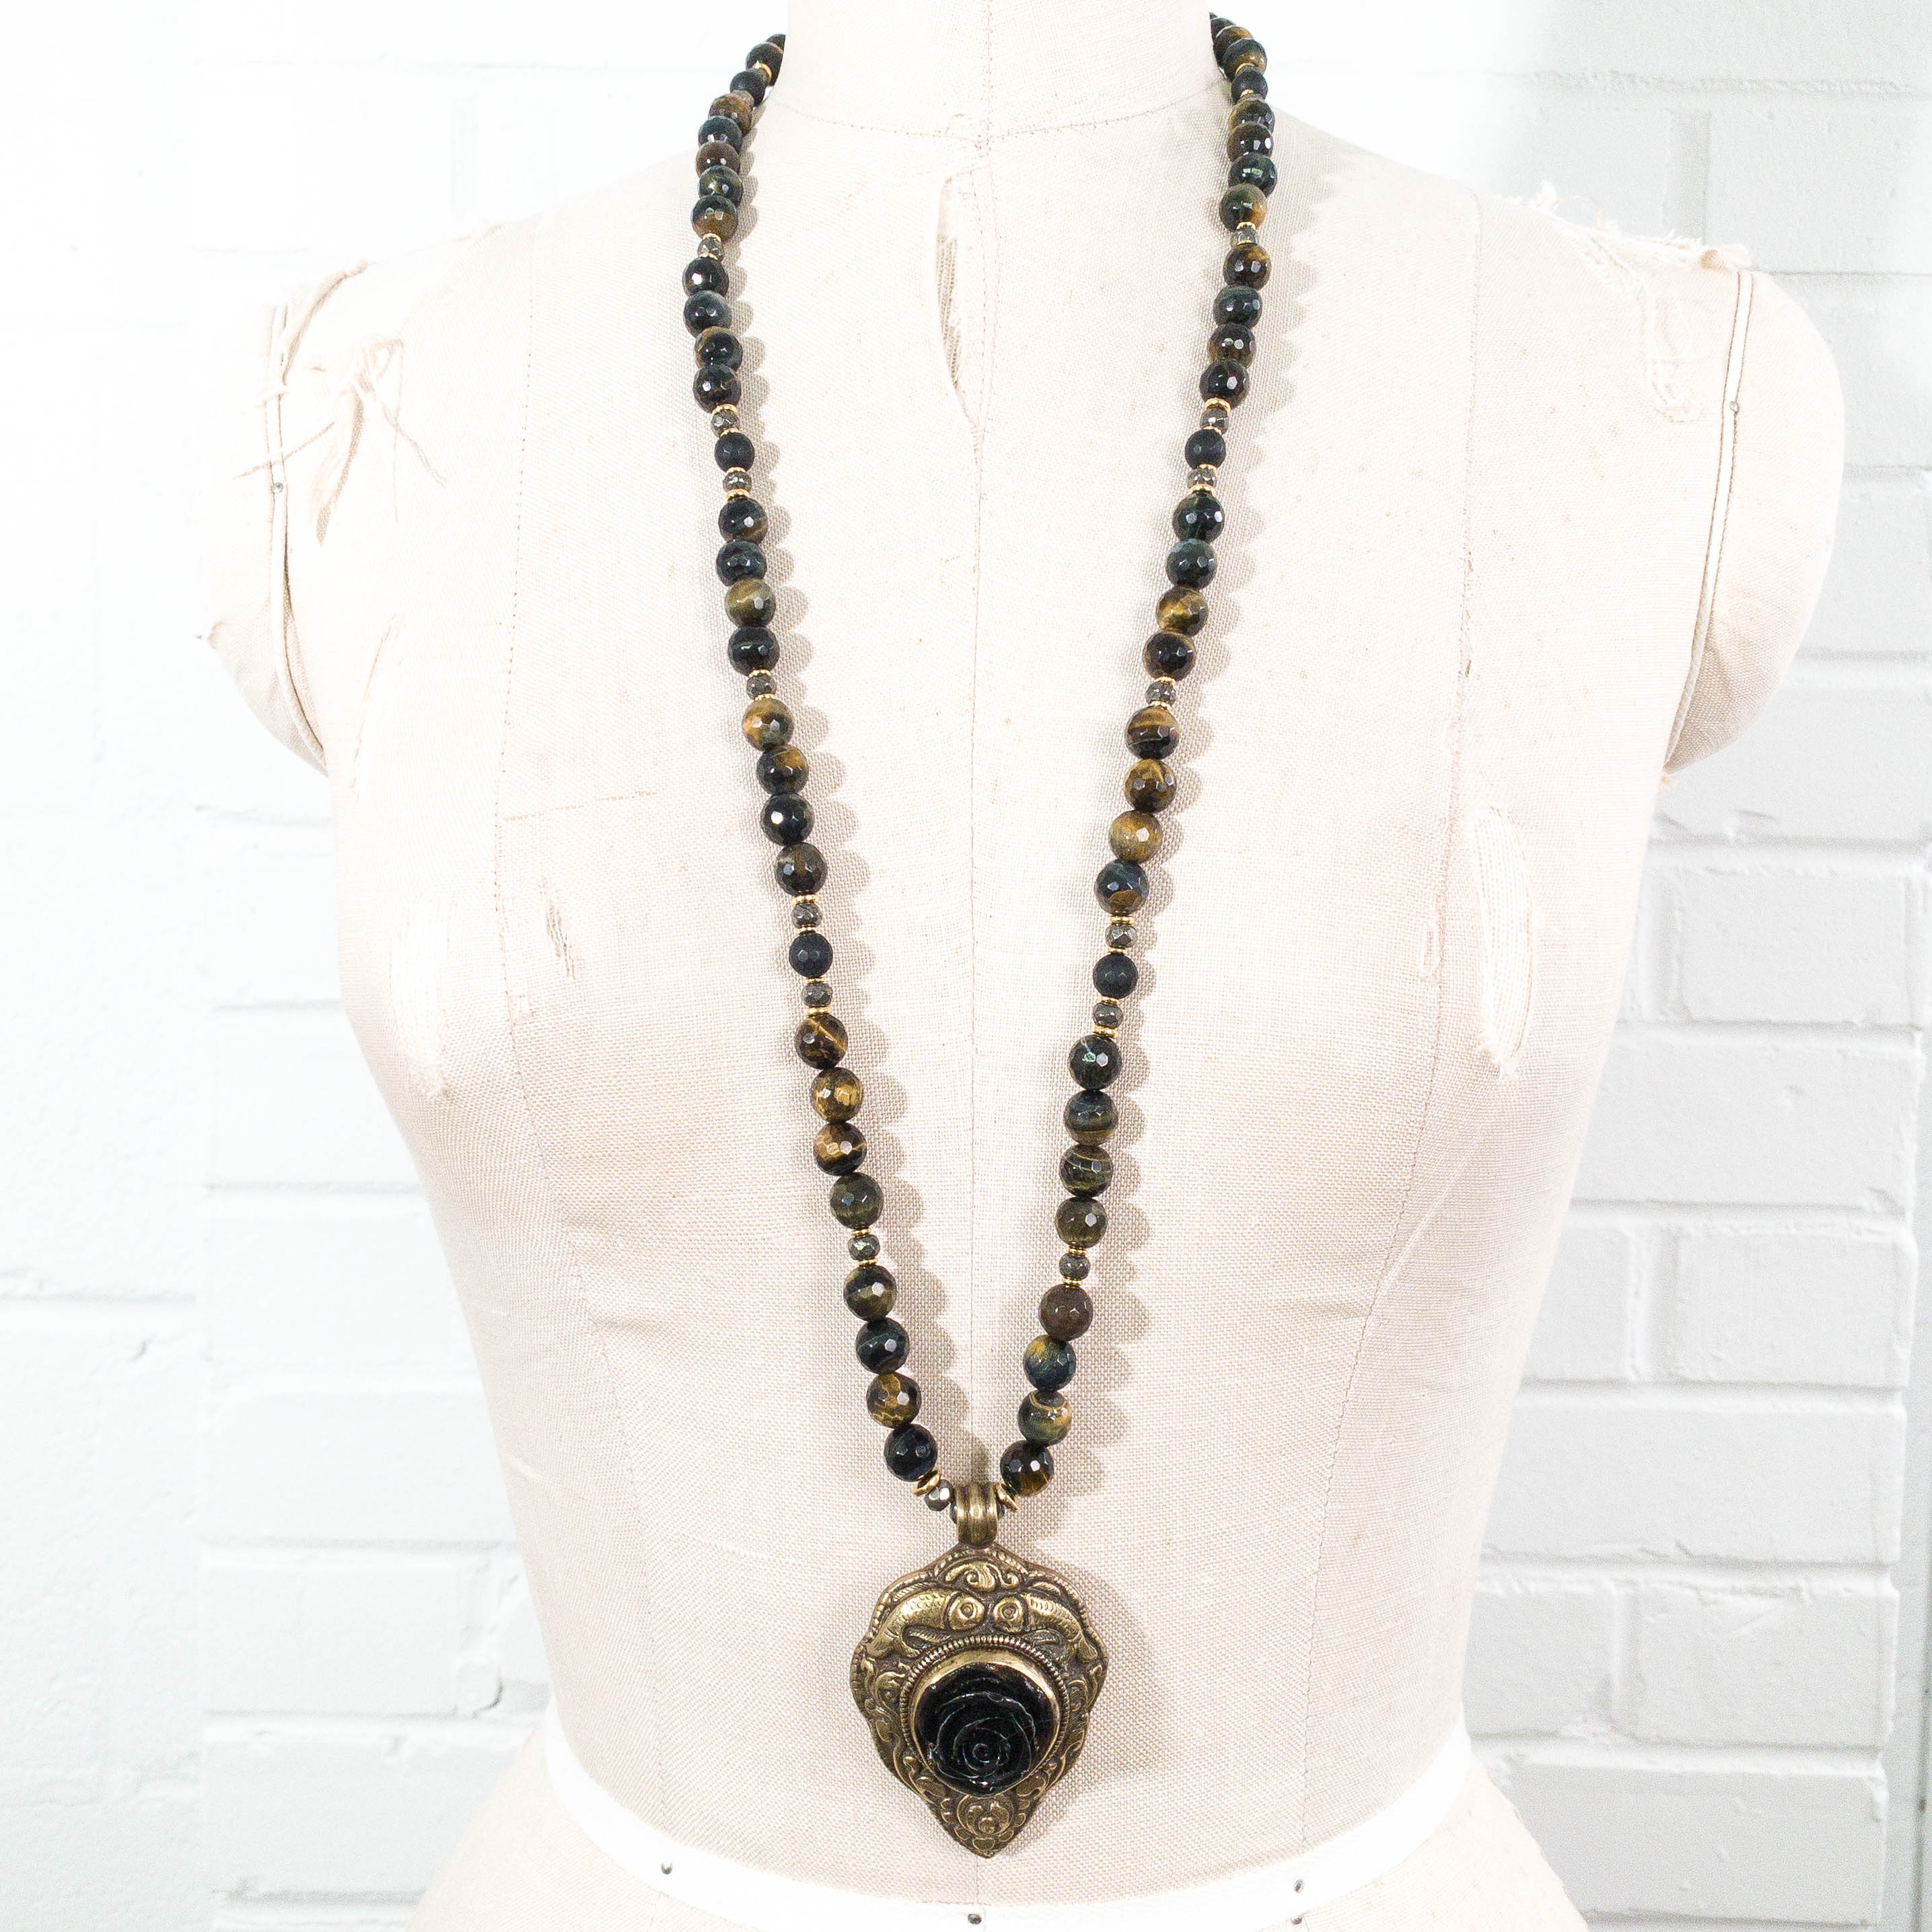 Nepal Obsidian Carved Rose Repousse Pendant on Black Tiger's Eye Necklace